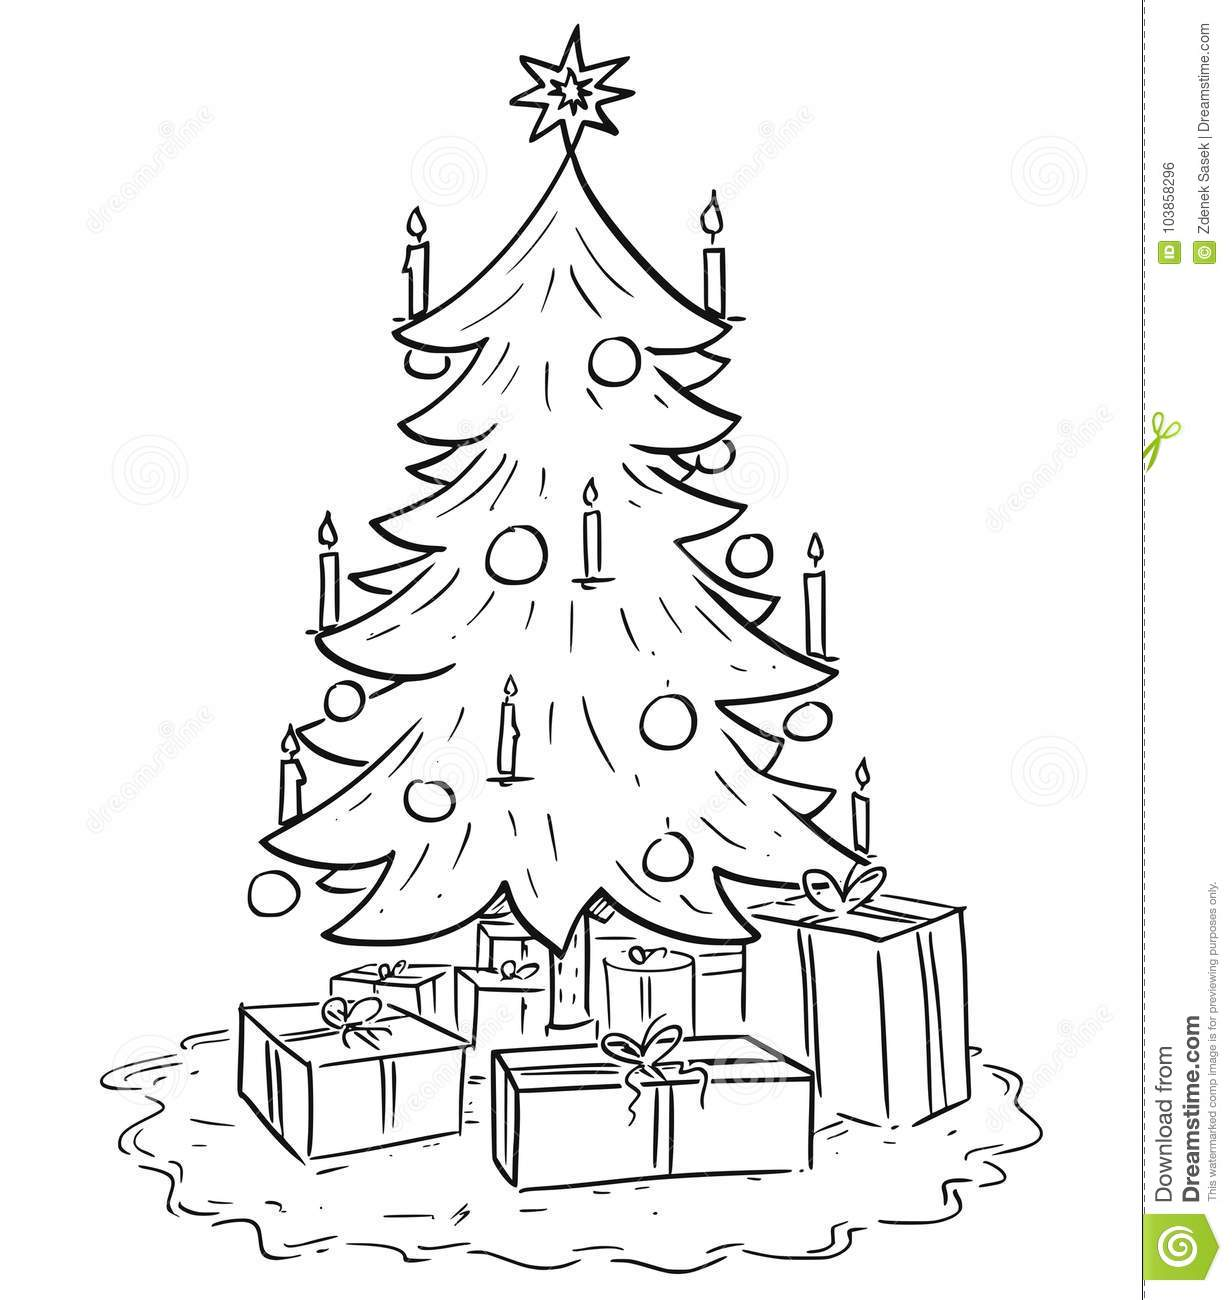 Cartoon Illustration Of Christmas Xmas Tree With Gifts Stock Vector